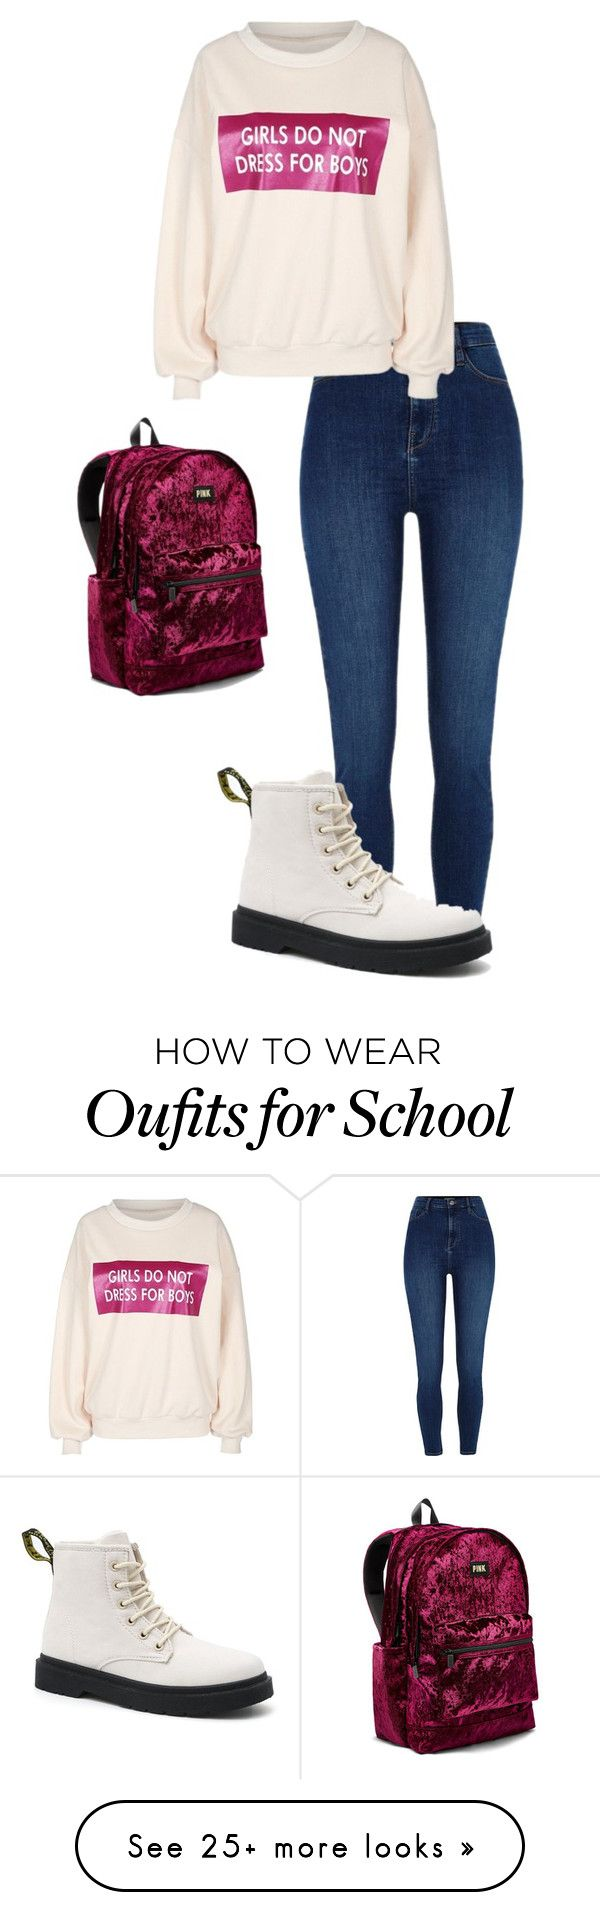 """""""Rachel at school"""" by crystalrose-014 on Polyvore featuring River Island and Victoria's Secret"""